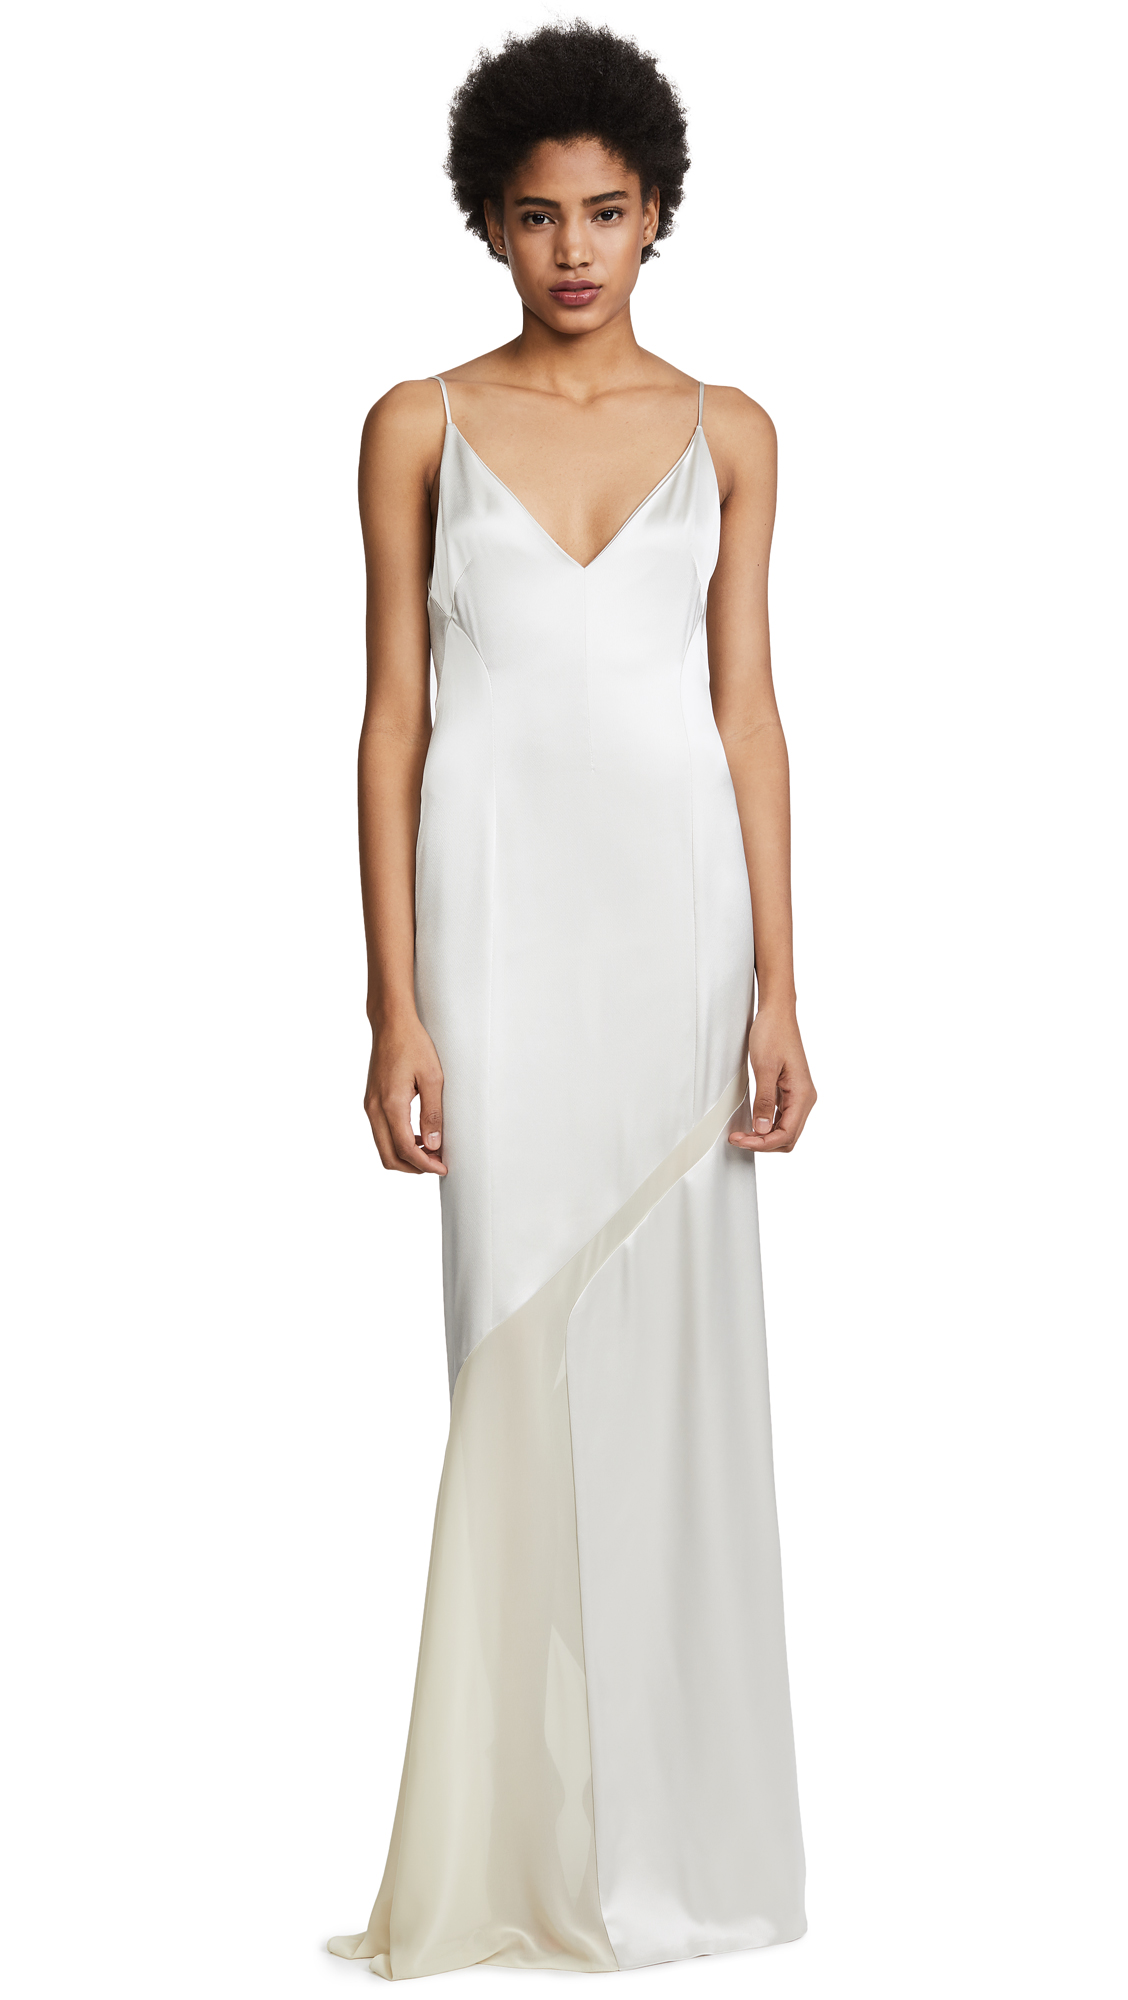 SALINAS DRESS BY GALVAN LONDON, ON SALE FOR $442.50 AT SHOPBOP.COM